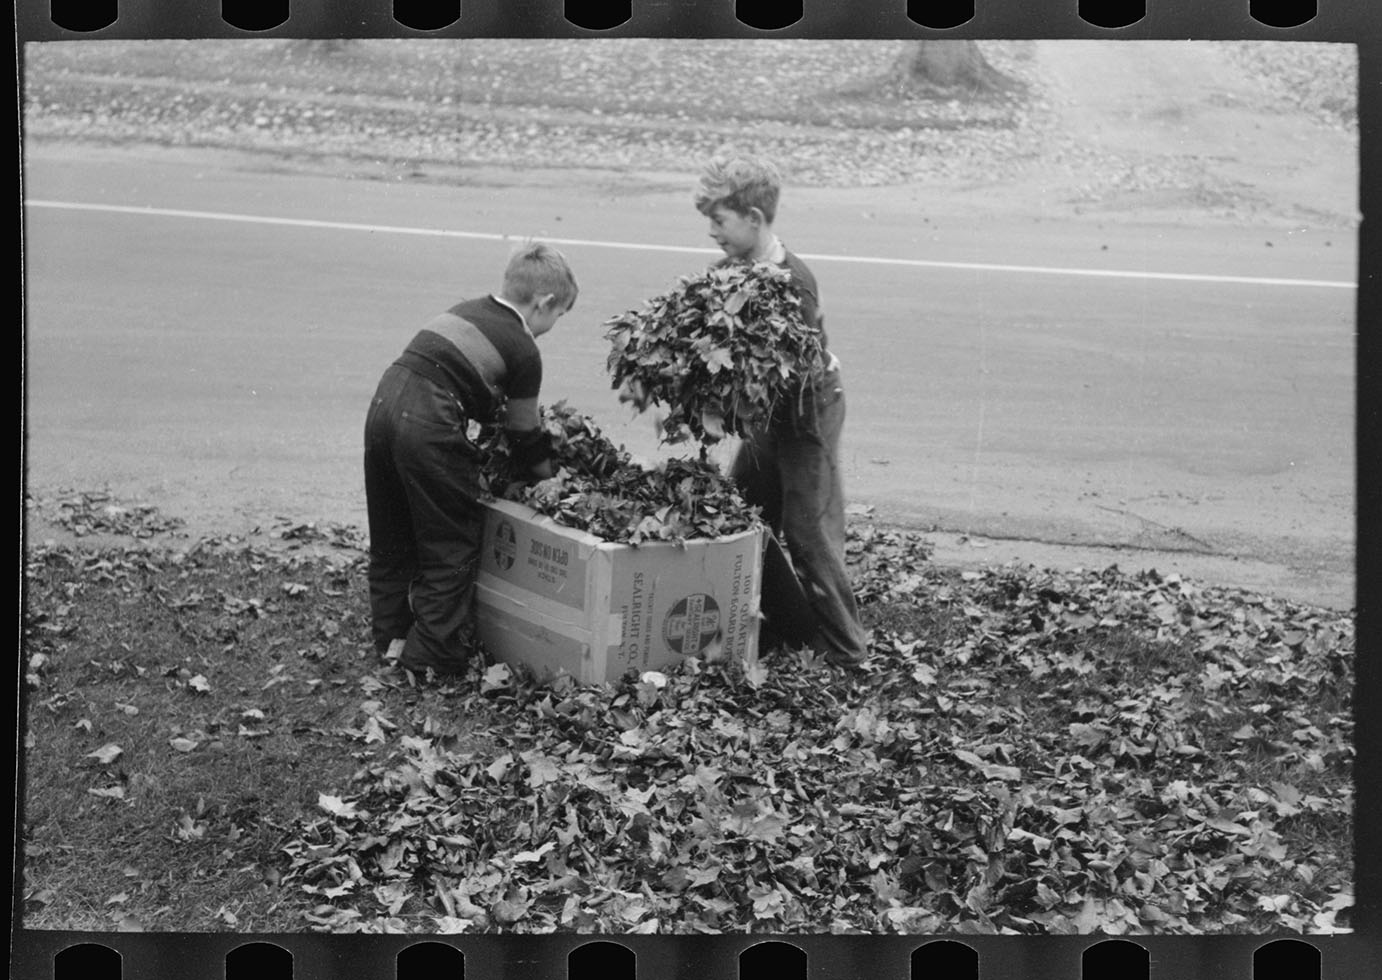 Boys gathering leaves, front lawn in Bradford, Vermont, October 1939. Photograph by Lee Russell, courtesy Office of War Information, Library of Congress.